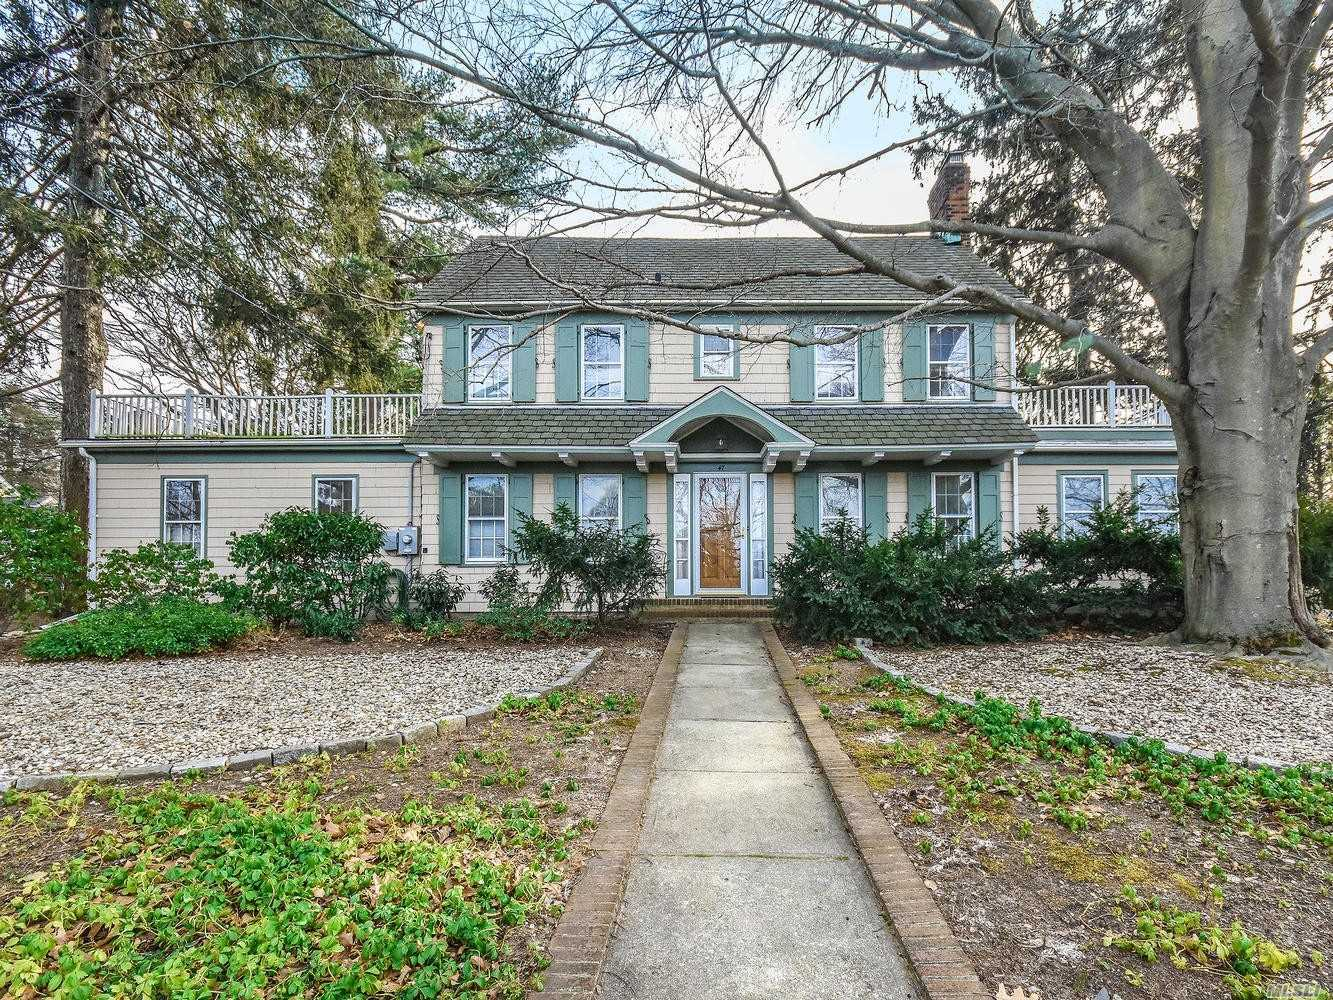 This 5 Bedroom, 2.5 Bath 1923 Center Hall Colonial Is A Classic Beauty. Situated On A Large, Private Property This Home Includes A Spacious 3 Car Garage Complete With Legal Artist Studio Above. Sunny And Bright With Plenty Of Room To Accommodate Many. Storage Galore With Work Space In Basement & Oversized Finished Recreation Room. Gas Generator, Updated Electric Service. Close To Sea Cliff School, Village & Beach!